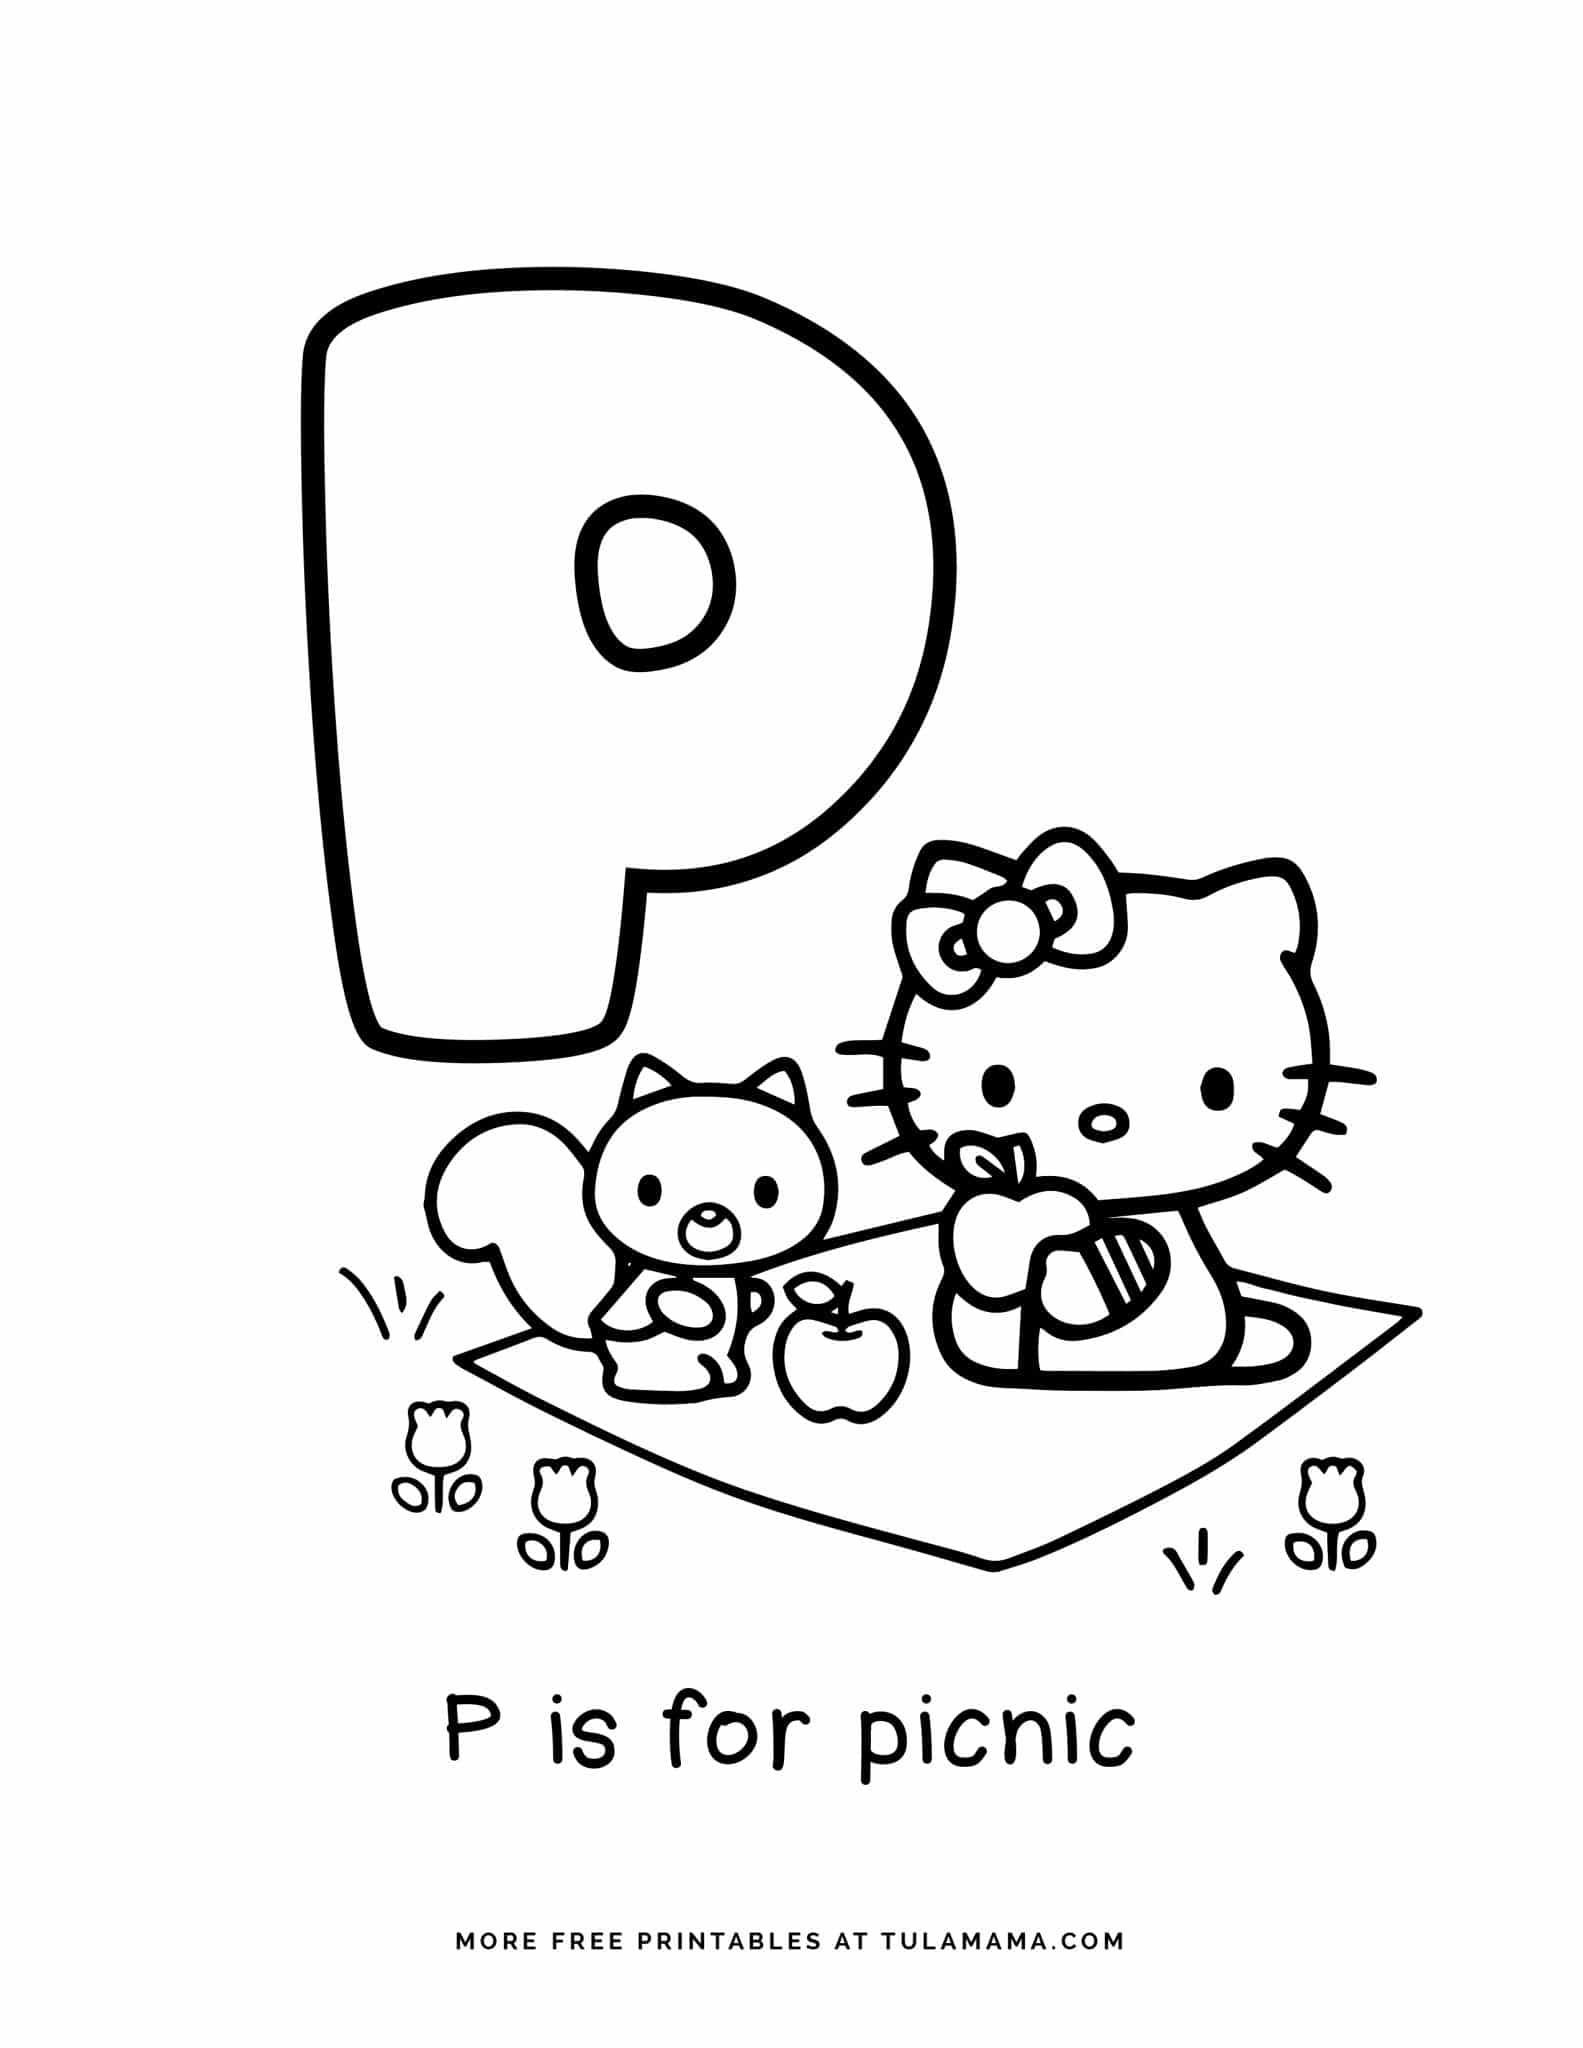 Free Hello Kitty Printables And Abc Coloring Pages In 2021 Hello Kitty Printables Hello Kitty Colouring Pages Abc Coloring Pages